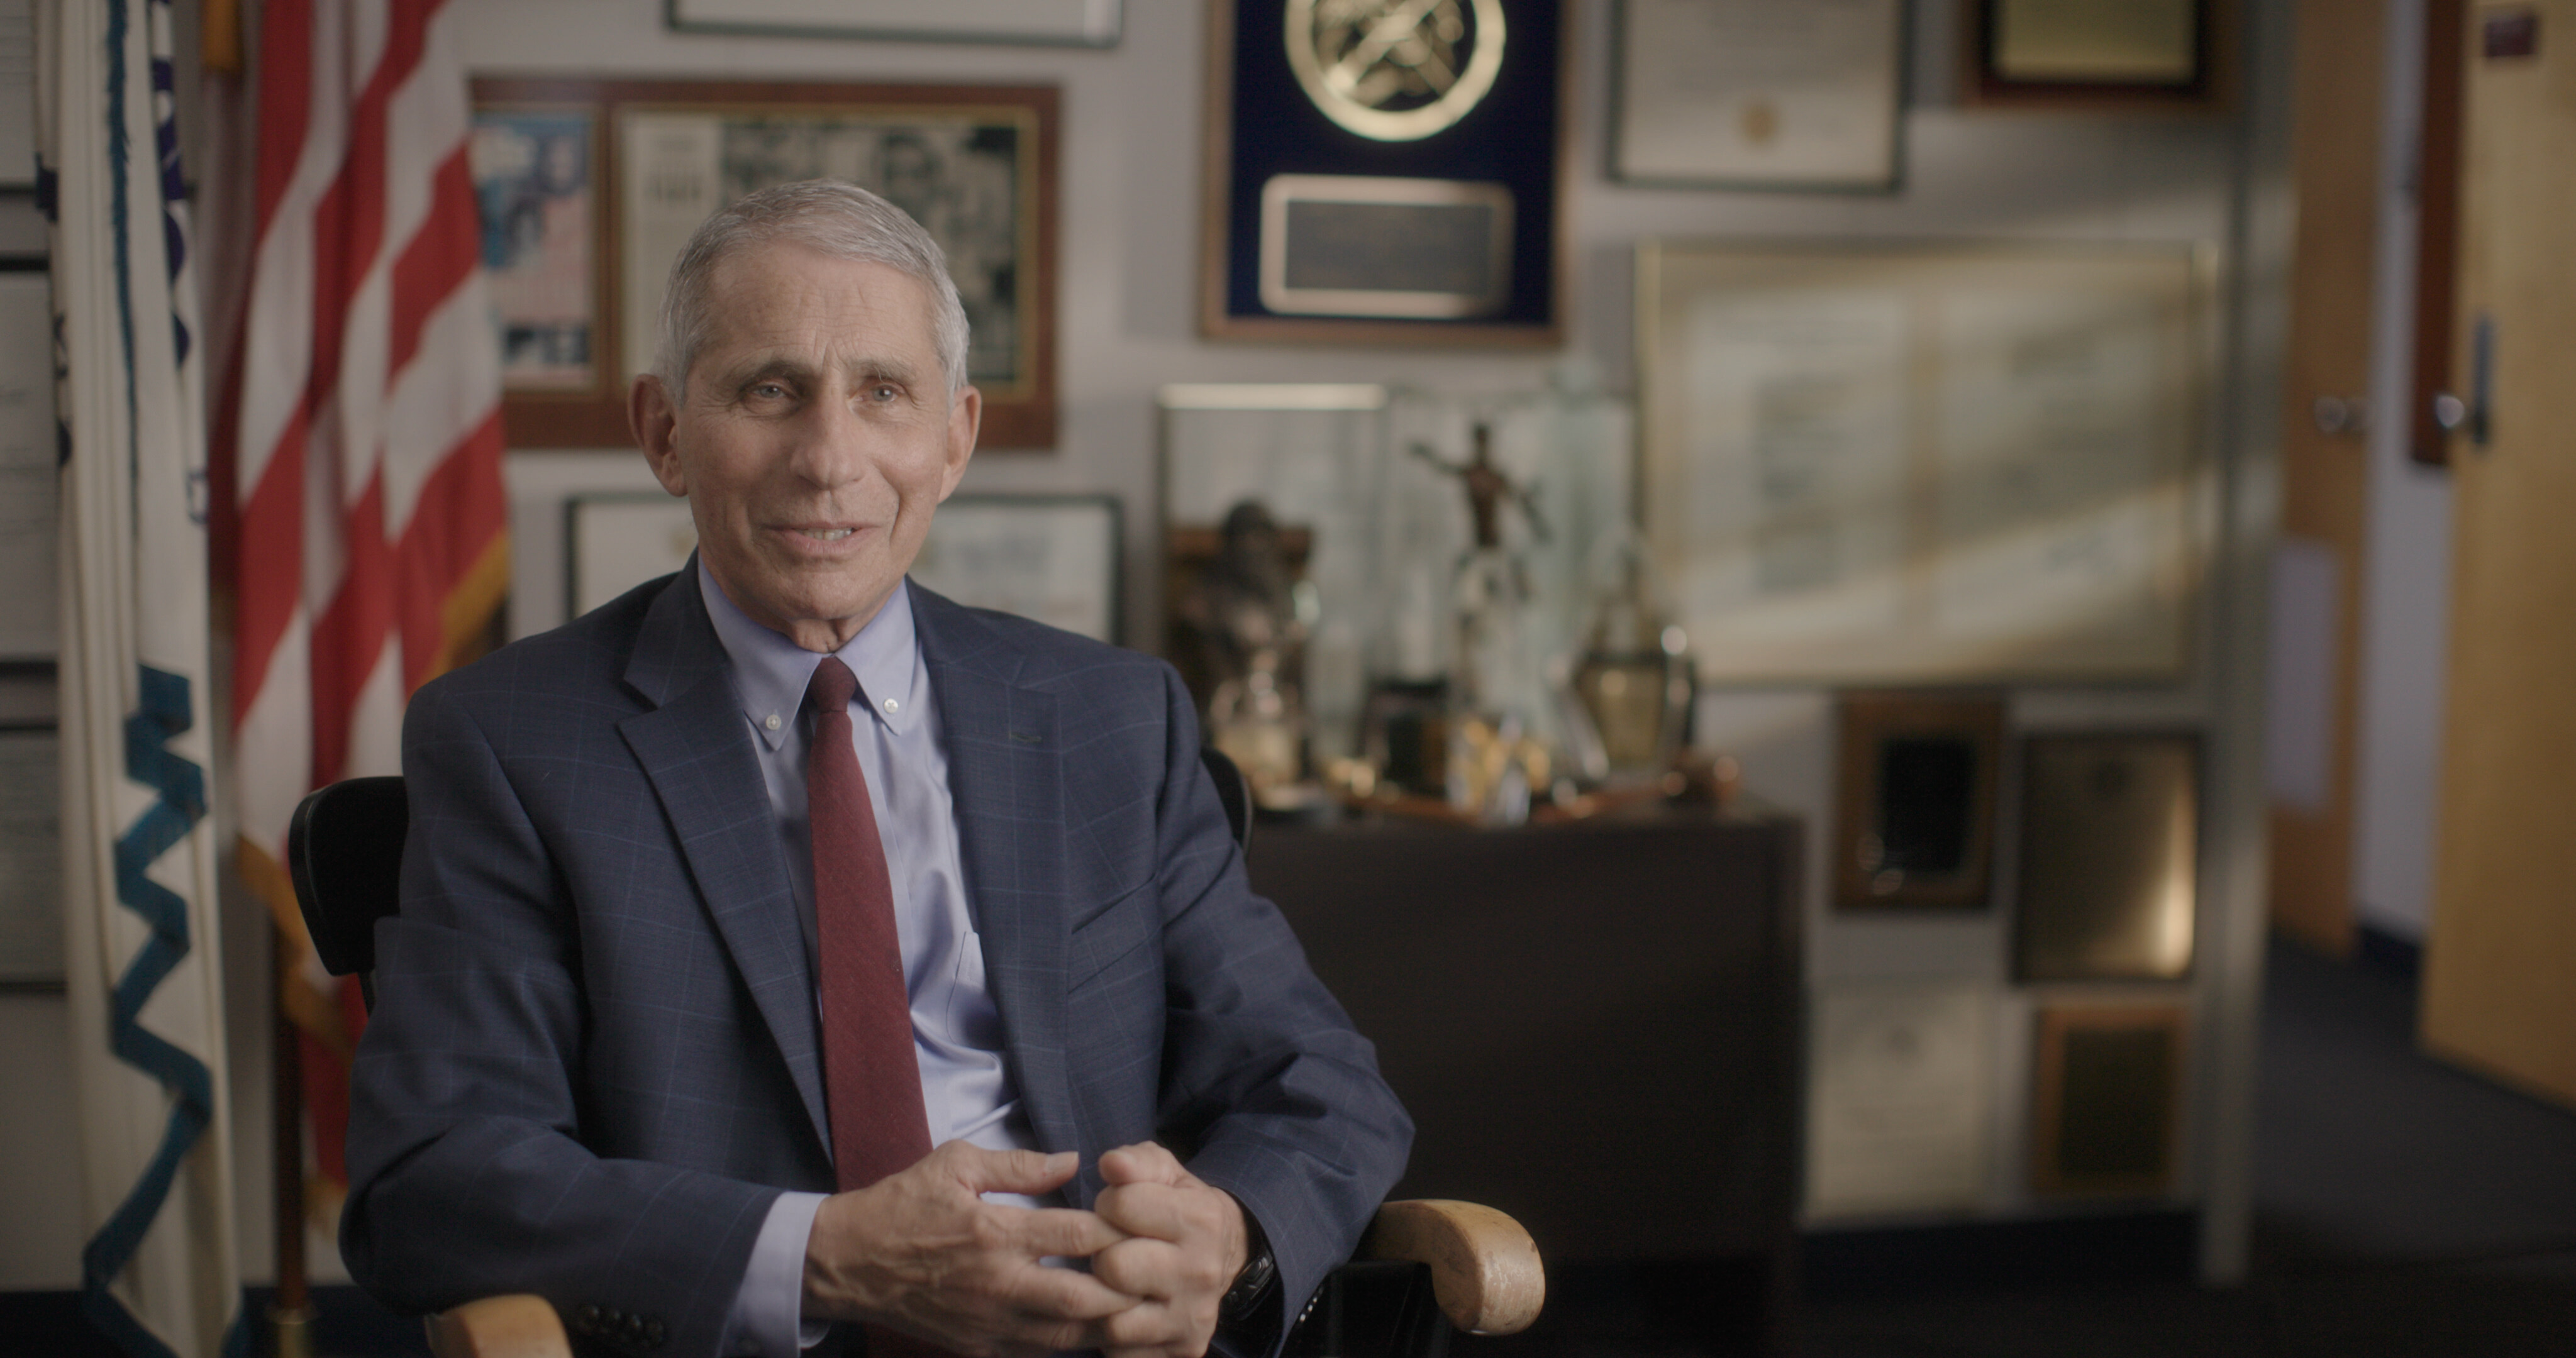 'Fauci' celebrates a life marked by public service — and more recently, political attacks